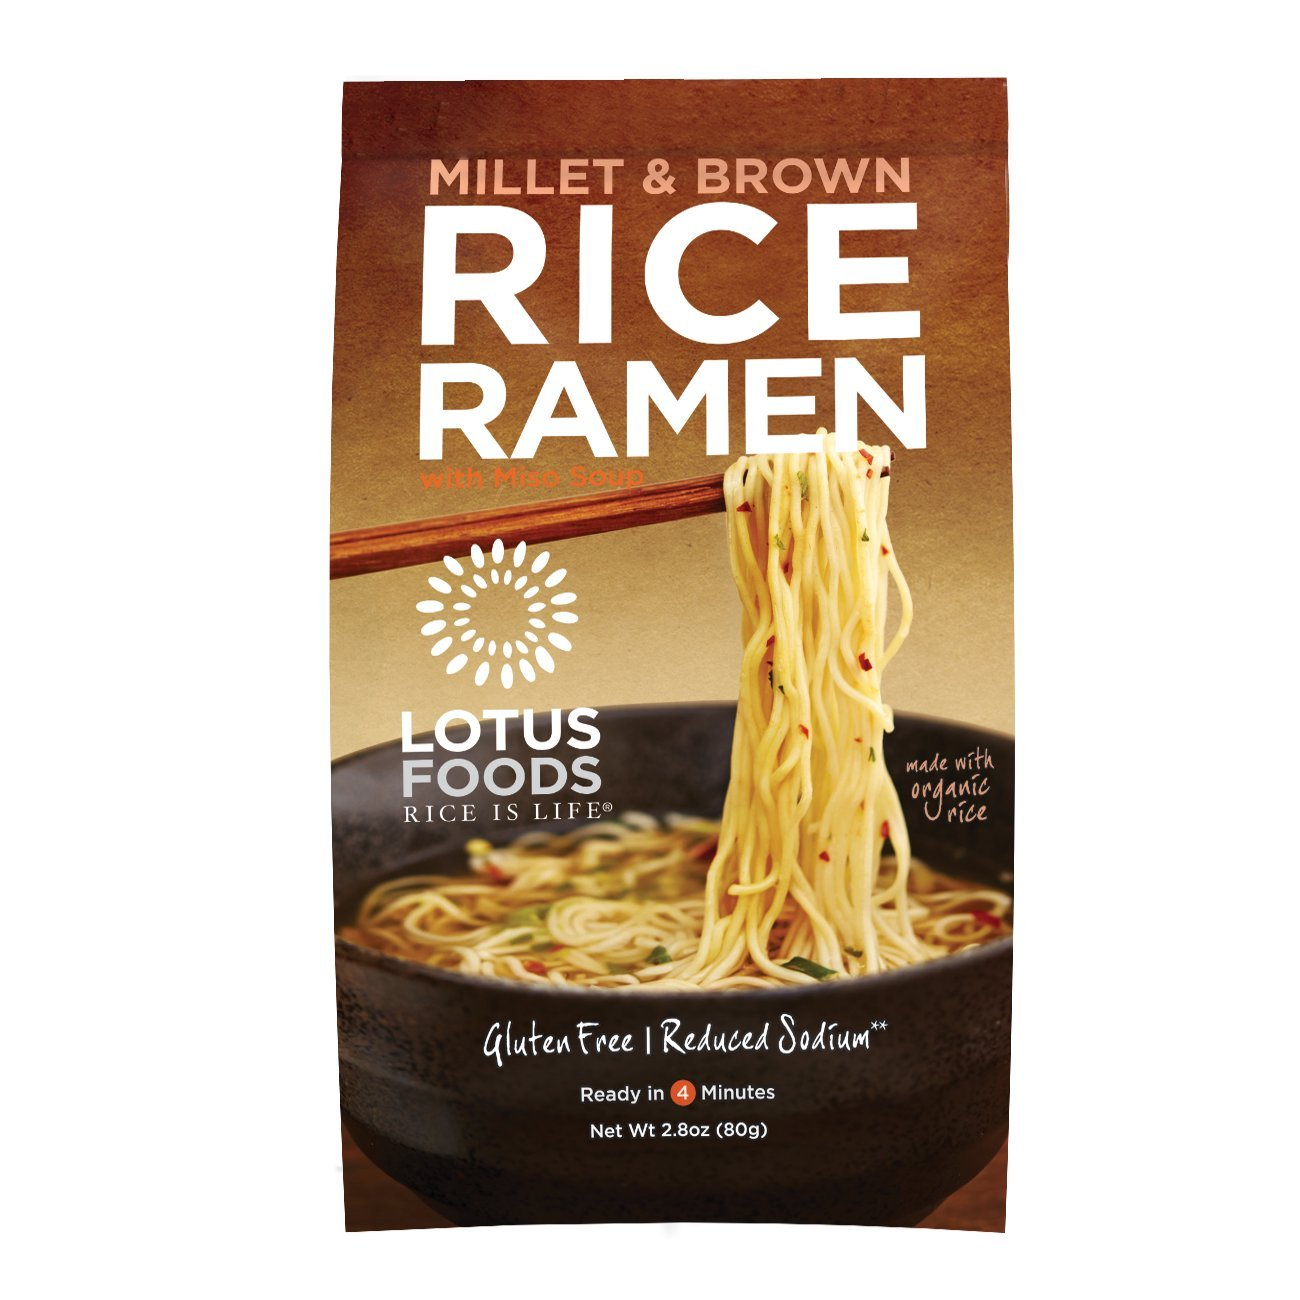 Lotus Foods Millet and Brown Rice Ramen with Miso Soup, Low Sodium, 2.8 oz, 10 Count by Lotus Foods